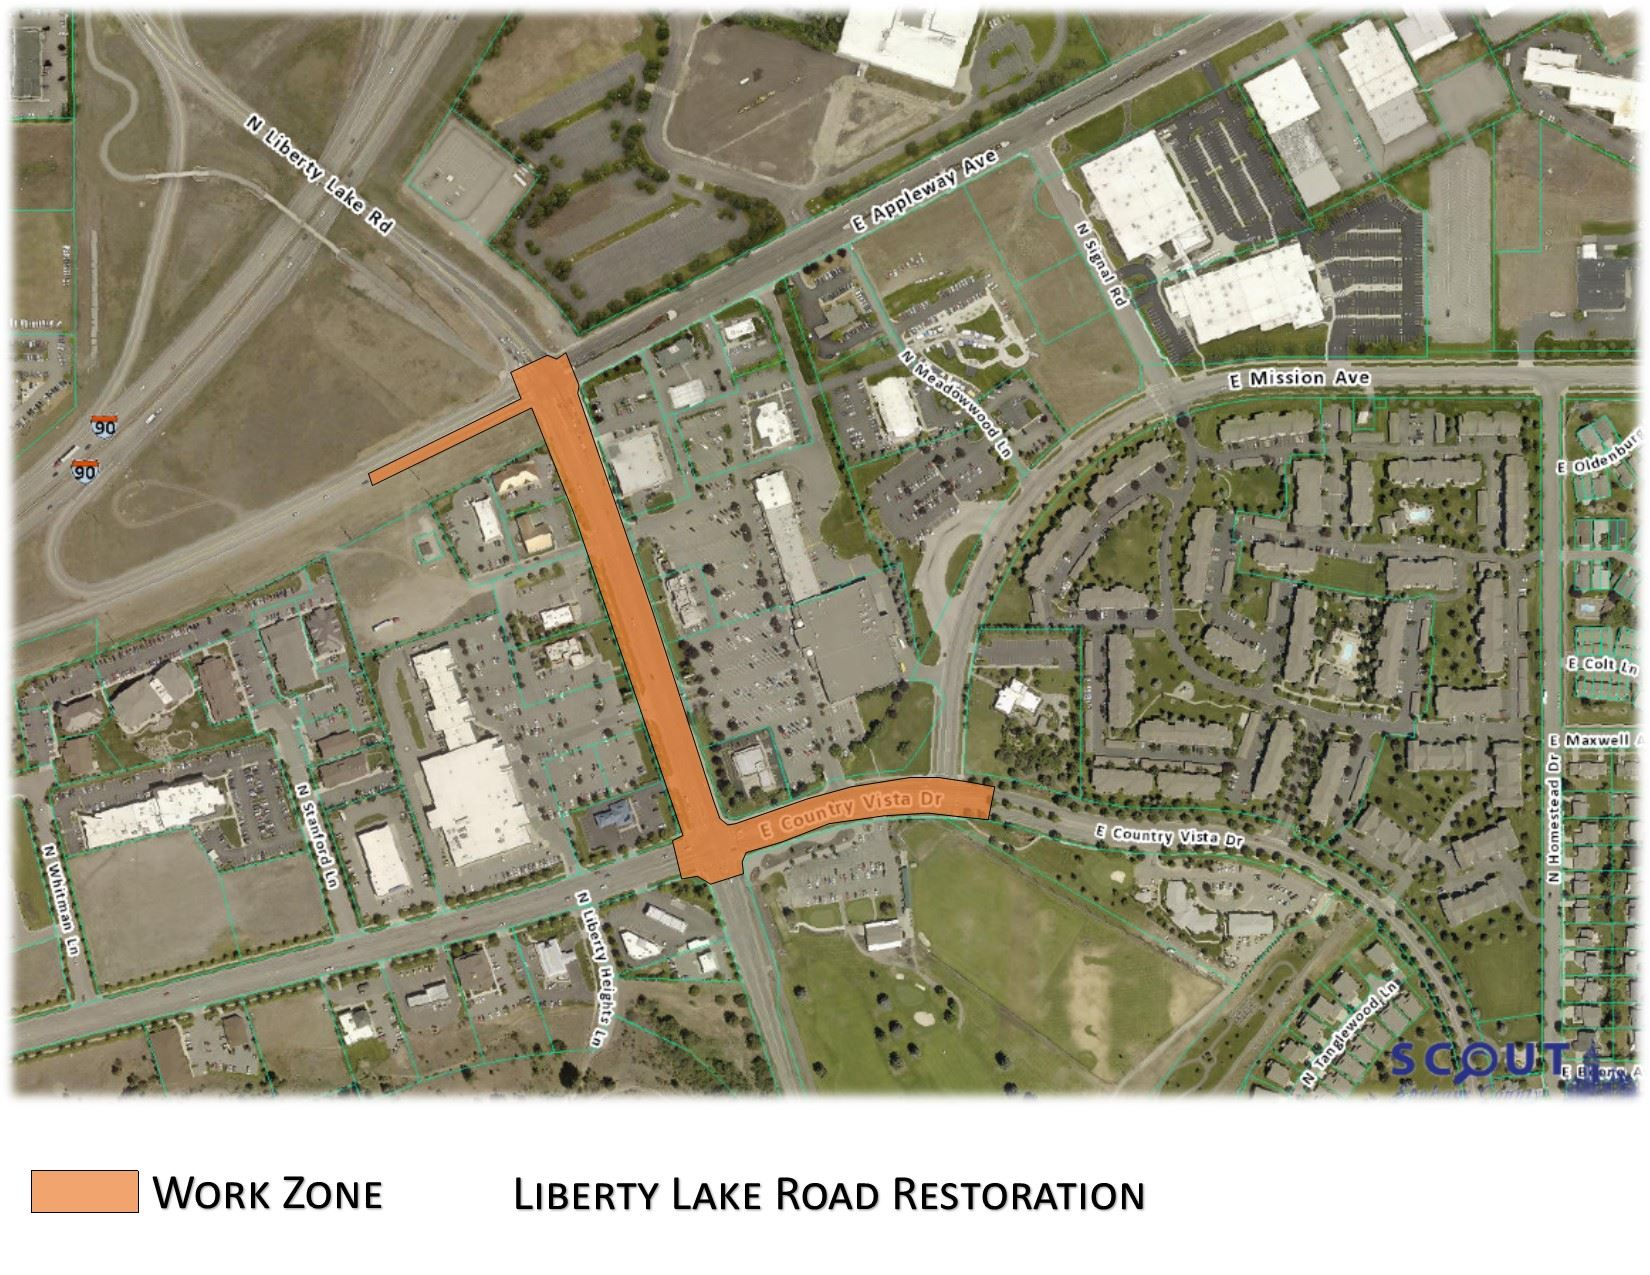 Liberty Lake Road Restoration